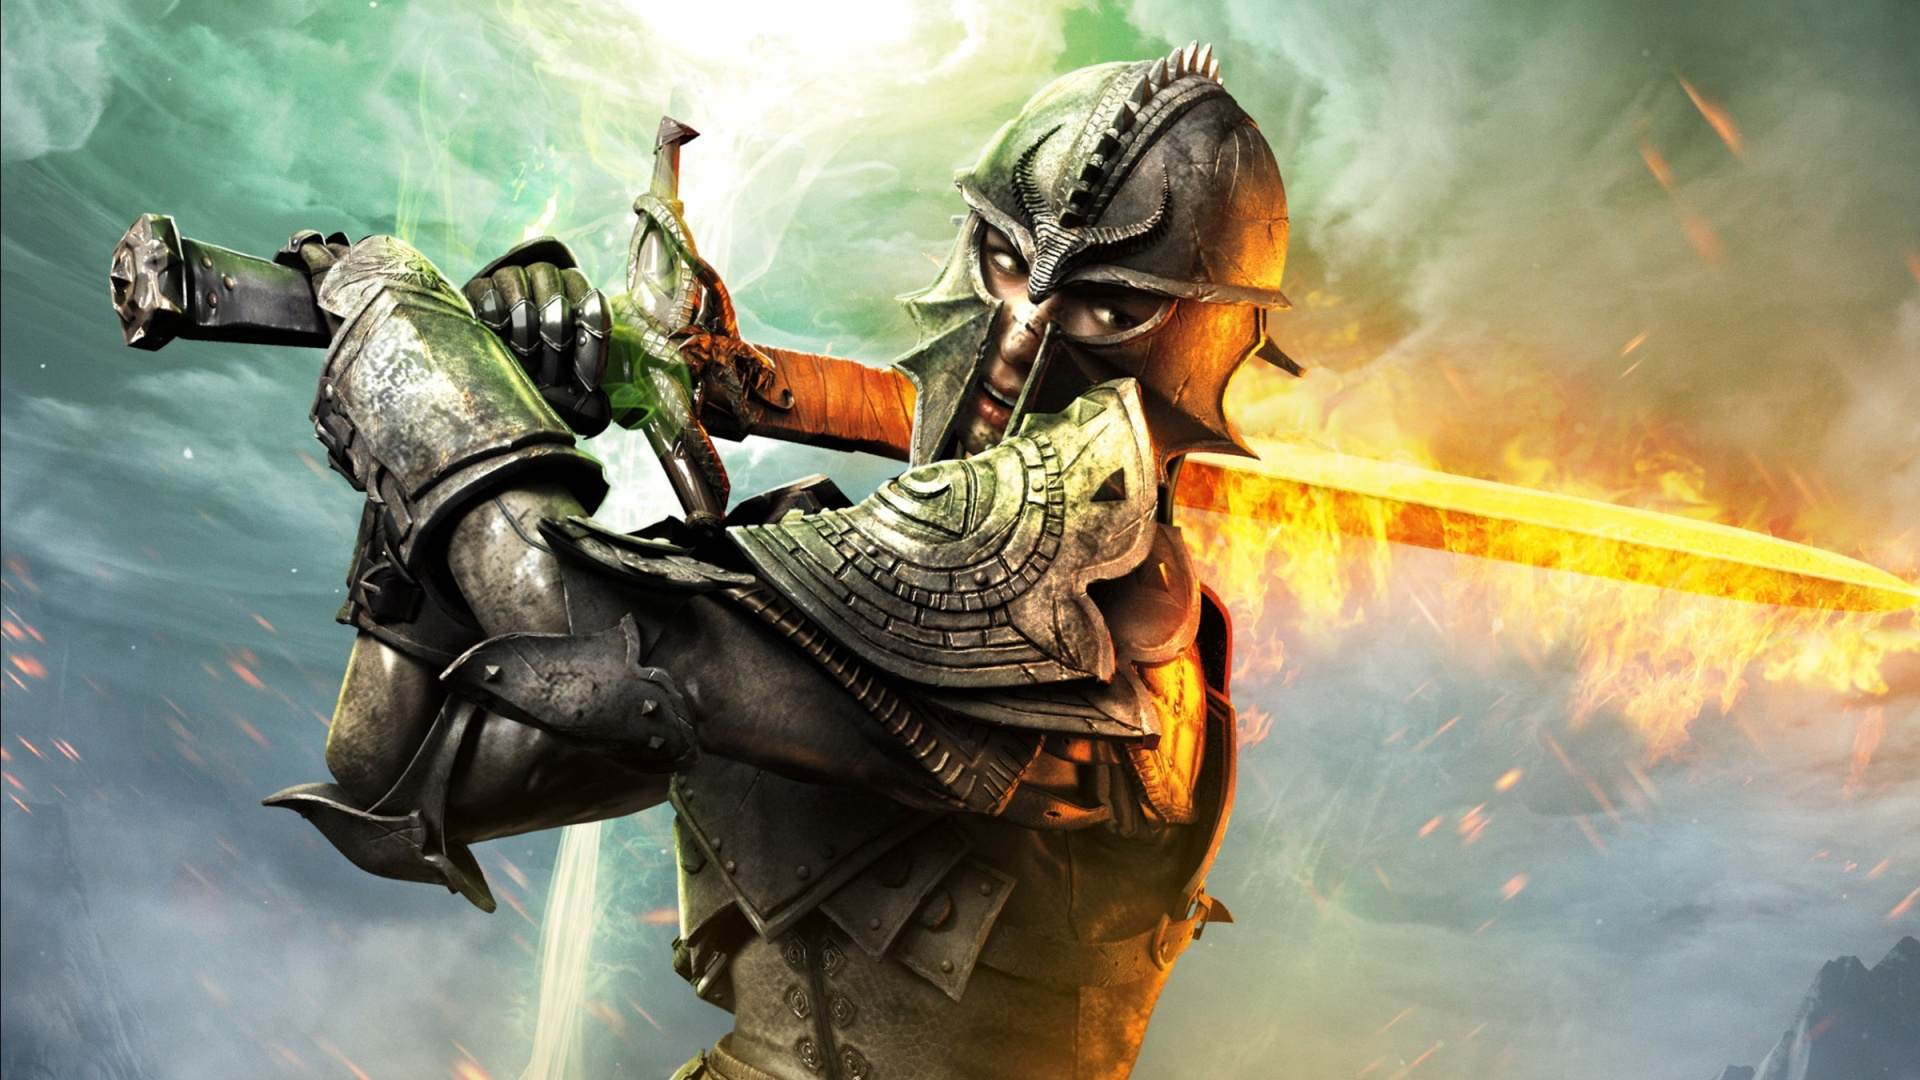 The Inquisitor Dragon Age Inquisition Wallpapers 1920x1080 632875